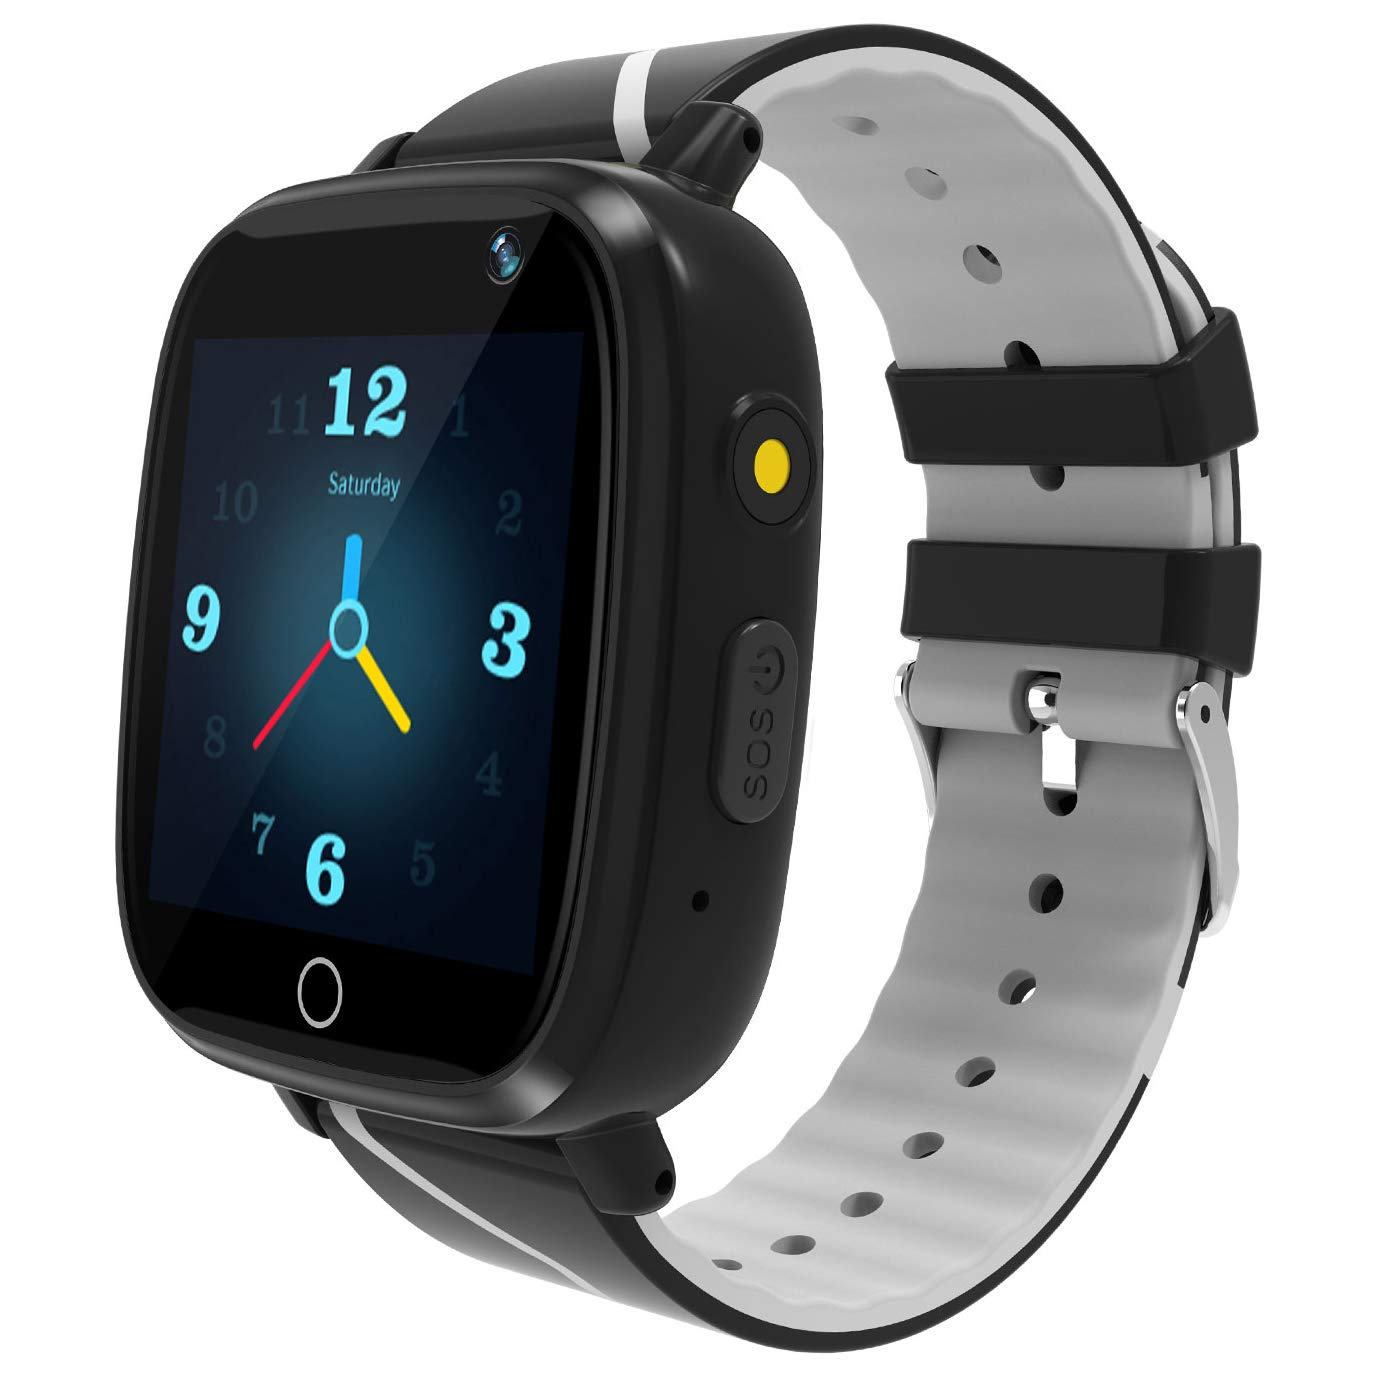 Kids Smart Watch GPS Tracker - Waterproof GPS Tracker Watch for Children Girls Boys with SOS Call Camera Touch Screen Game Alarm for Kids Boys and Girls ... (1Black) by Karaforna